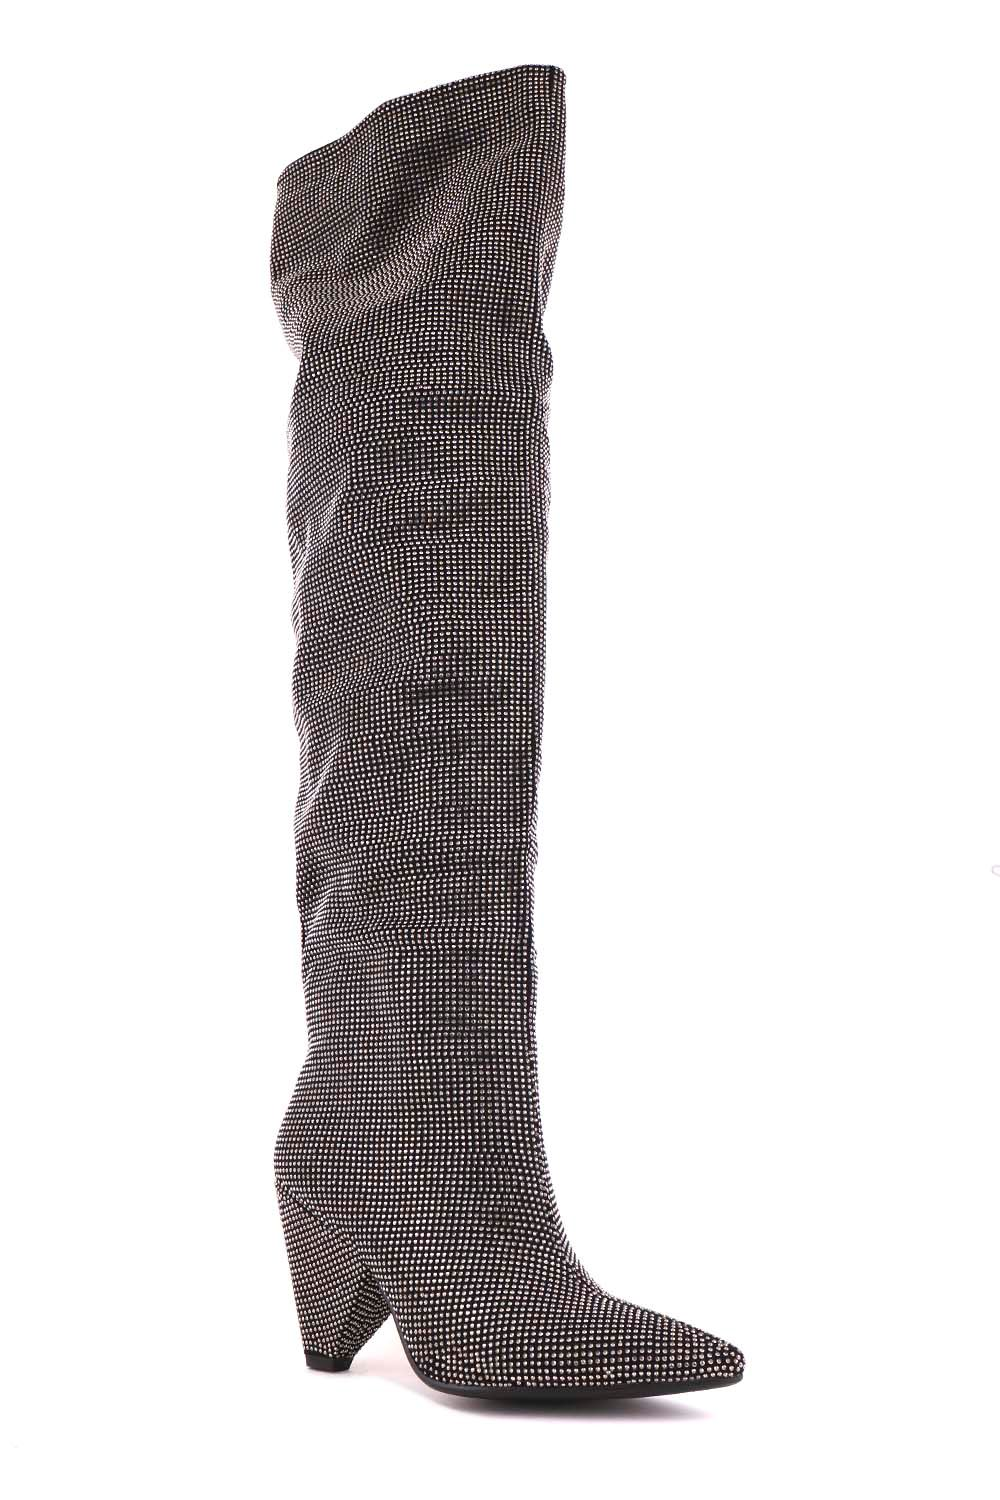 huge selection of a1158 f7f27 Pewter Boots Inuovo